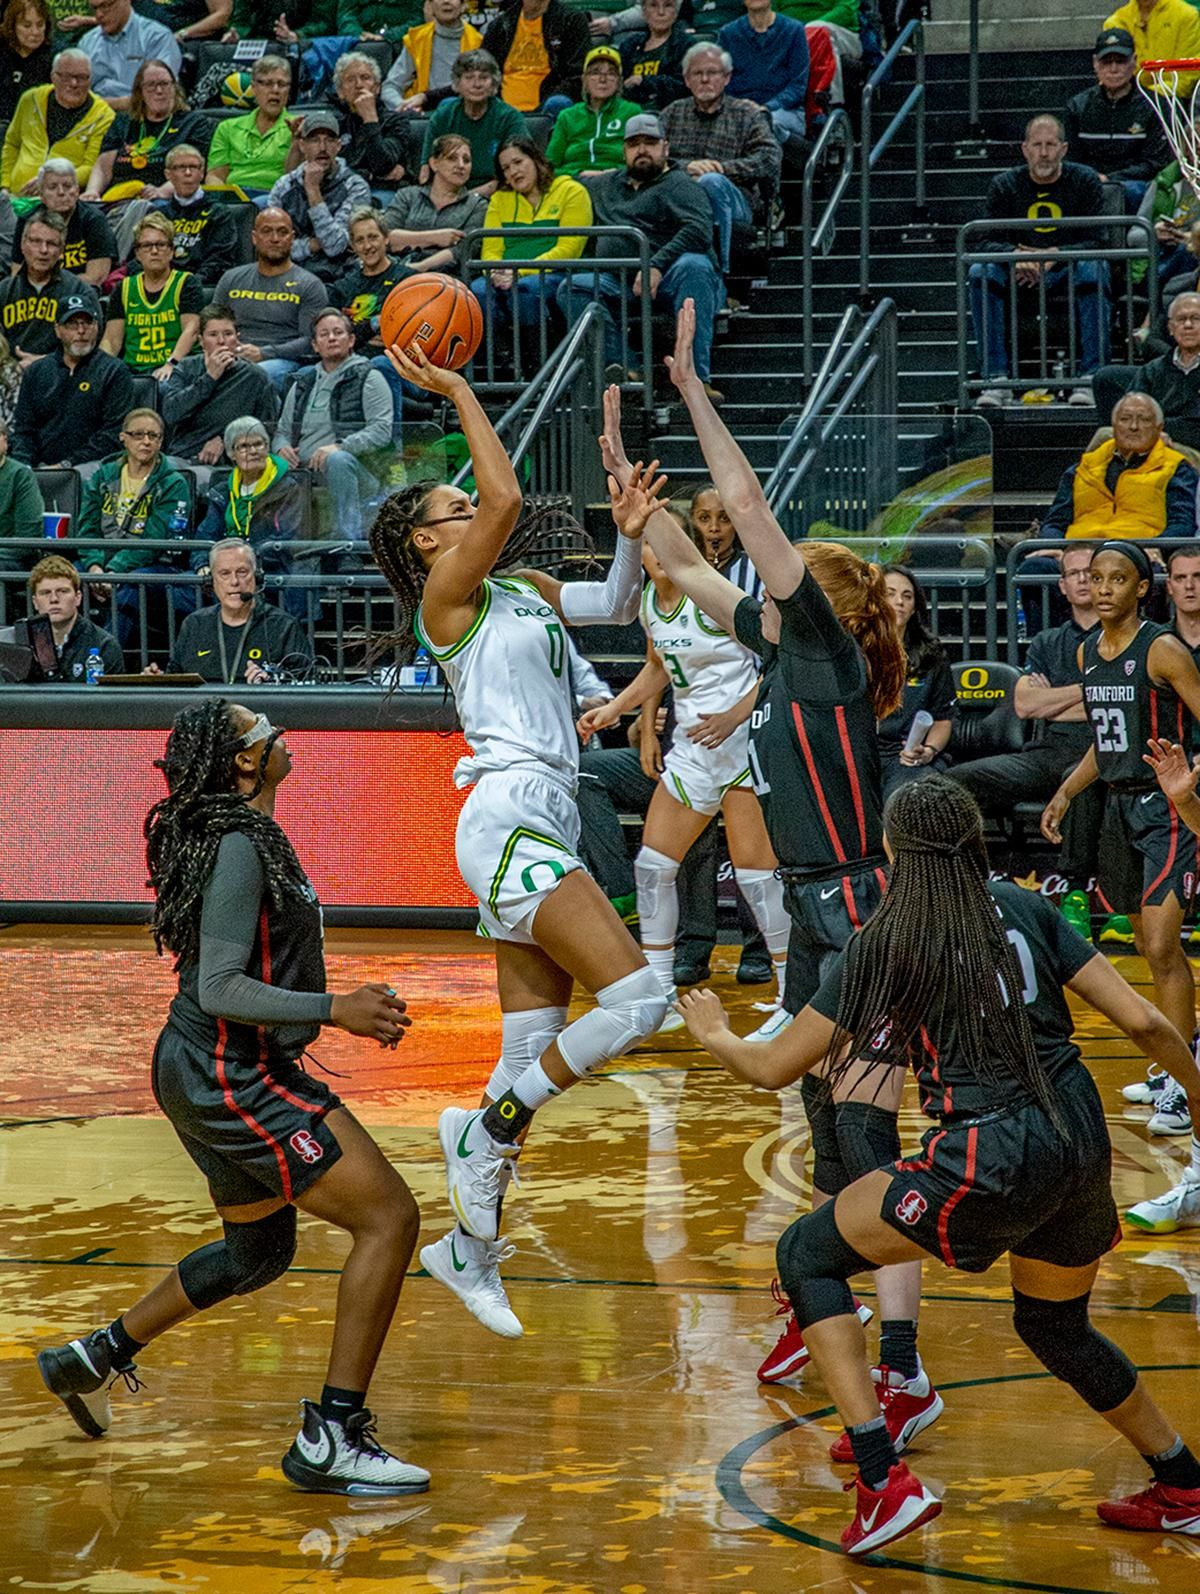 Oregon's forward Satou Sabally, #0, goes up for a floater over Stanford's forward Ashten Pretchel, #11, after driving pass  forward Francesca Belibi, #5. The #6 University of Oregon Ducks women's basketball team defeated #3 Stanford Cardinal 87-55 in front of a sold out crowd of 12, 218 fans in Matthew Knight Arena. Sabrina Ionescu broke the all-time Oregon scoring record of 2,253 and ended the game with 37 points, 11 rebounds, another double-double. Satou Sabally added 18 points and 11 rebounds, also a double-double. Ruthy Hebard put up 11 points with 5 rebounds, and Minyon Moore added 10 points 3 rebounds. The Ducks next face off against Cal on Sunday, January 19, at 2 pm in Matthew Knight Arena. Photo by Jeffrey Price